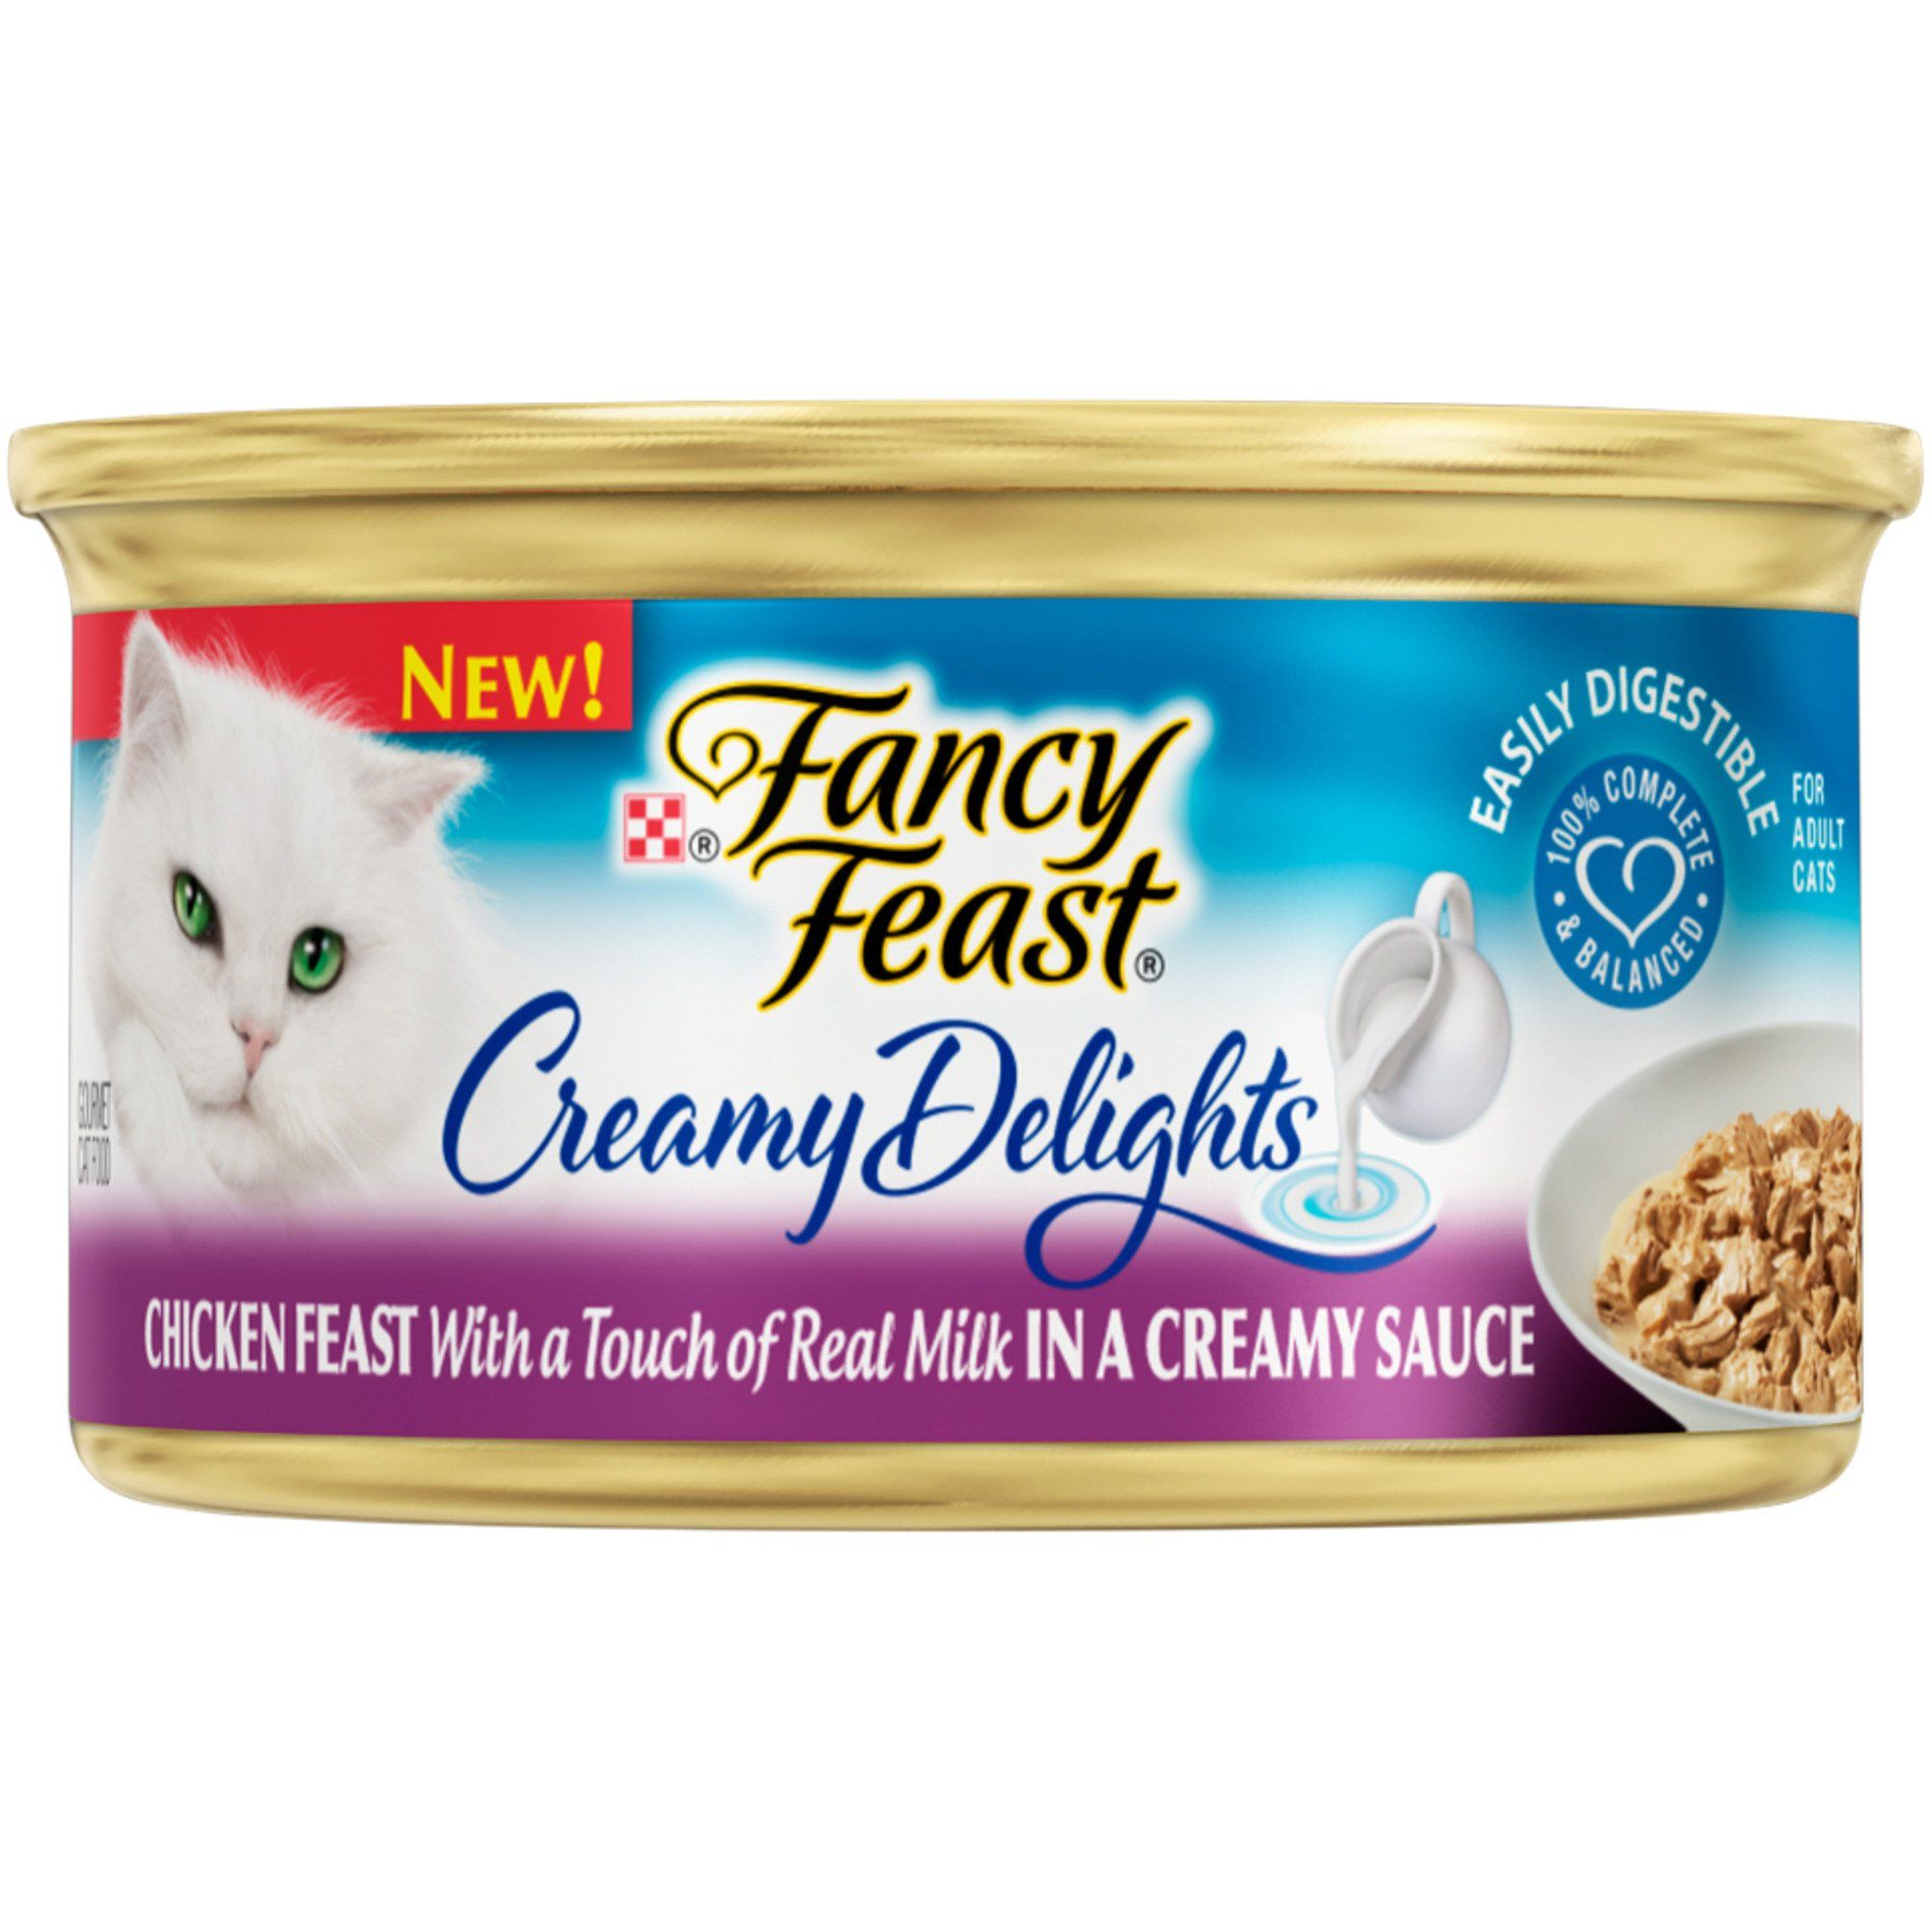 Purina Fancy Feast Creamy Delights Chicken Feast With A Touch Of Real Milk In A Creamy Sauce Adult Wet Cat Food 3 Oz Can Creamy Sauce Cat Food Food